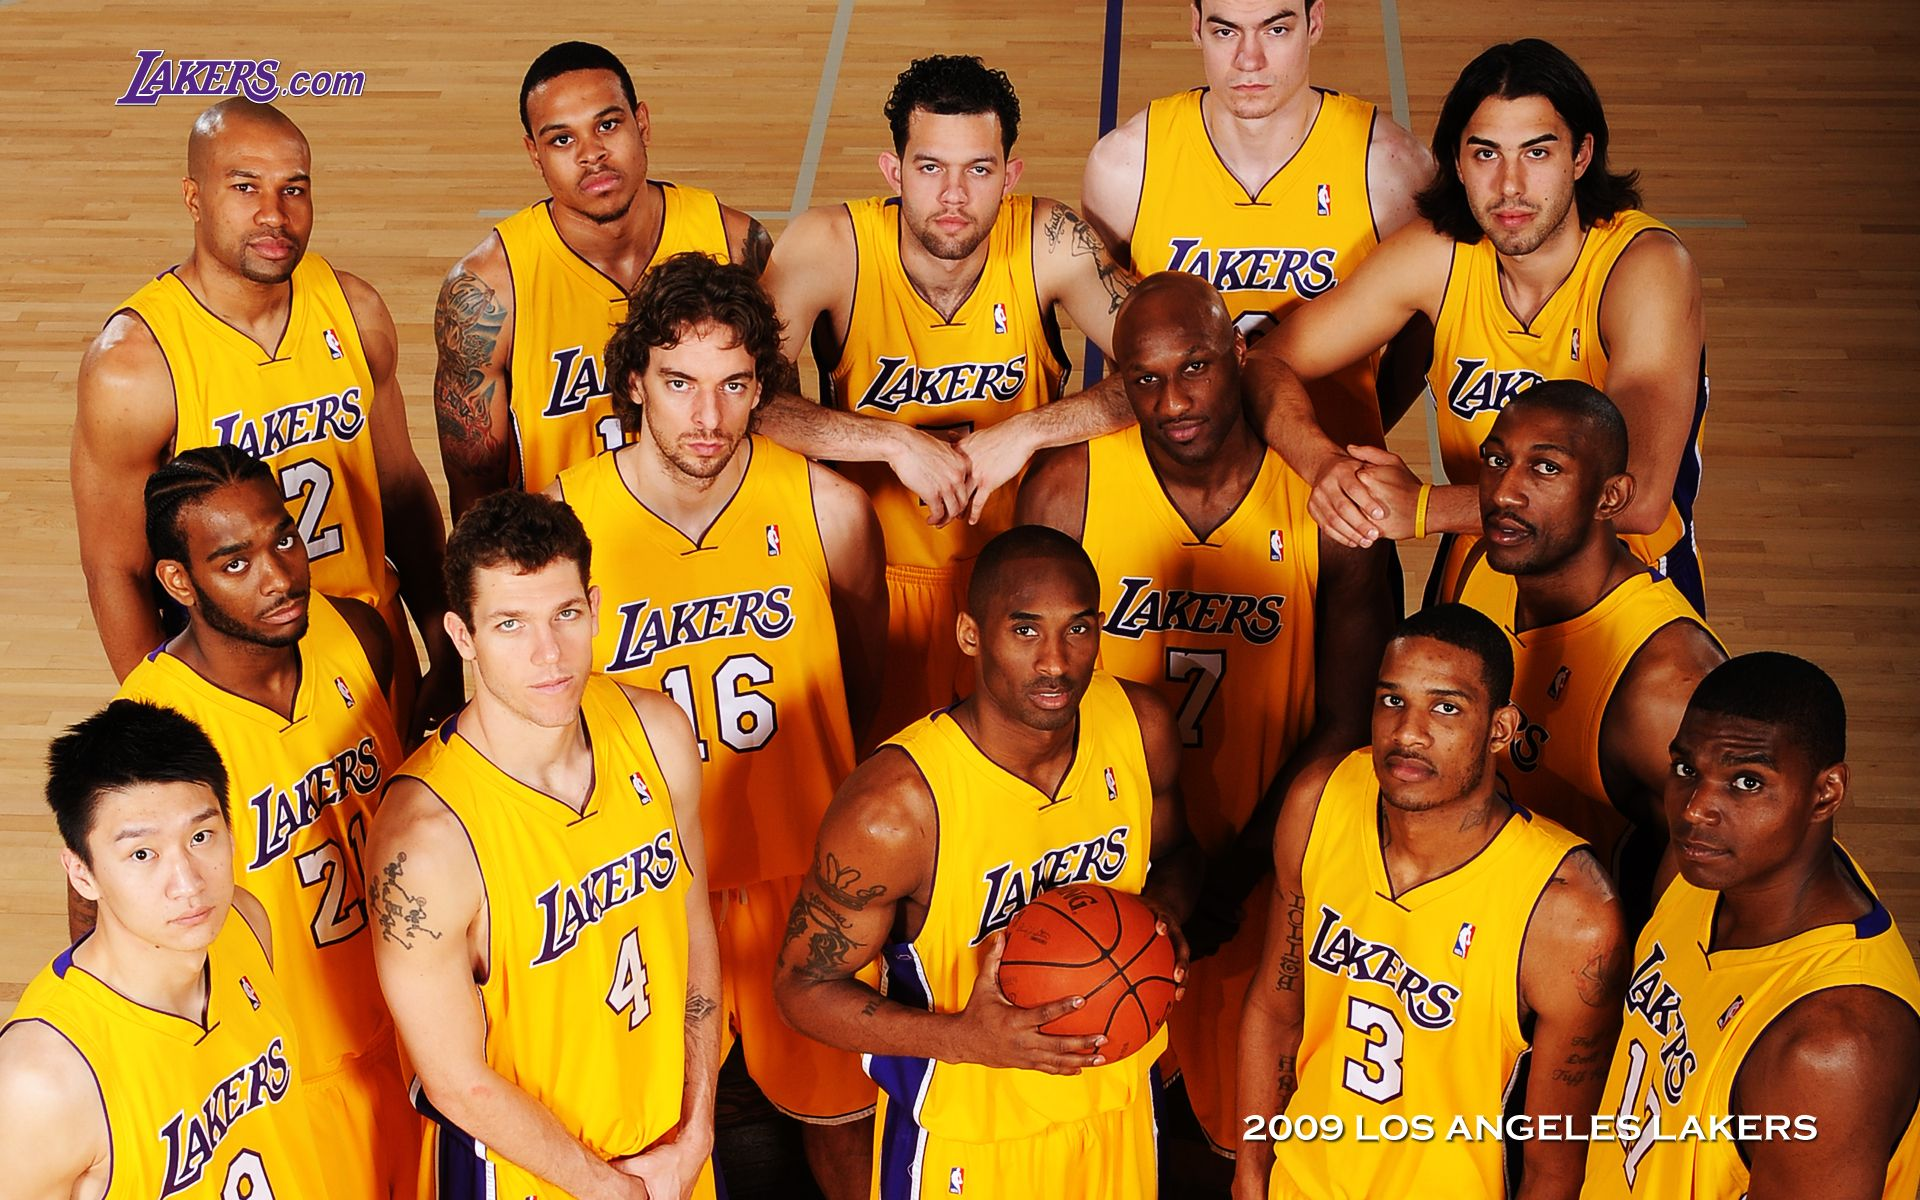 Los Angeles Lakers Players Pictures 2486 Wallpaper Hd Los Angeles Lakers Players Los Angeles Lakers Lakers Team